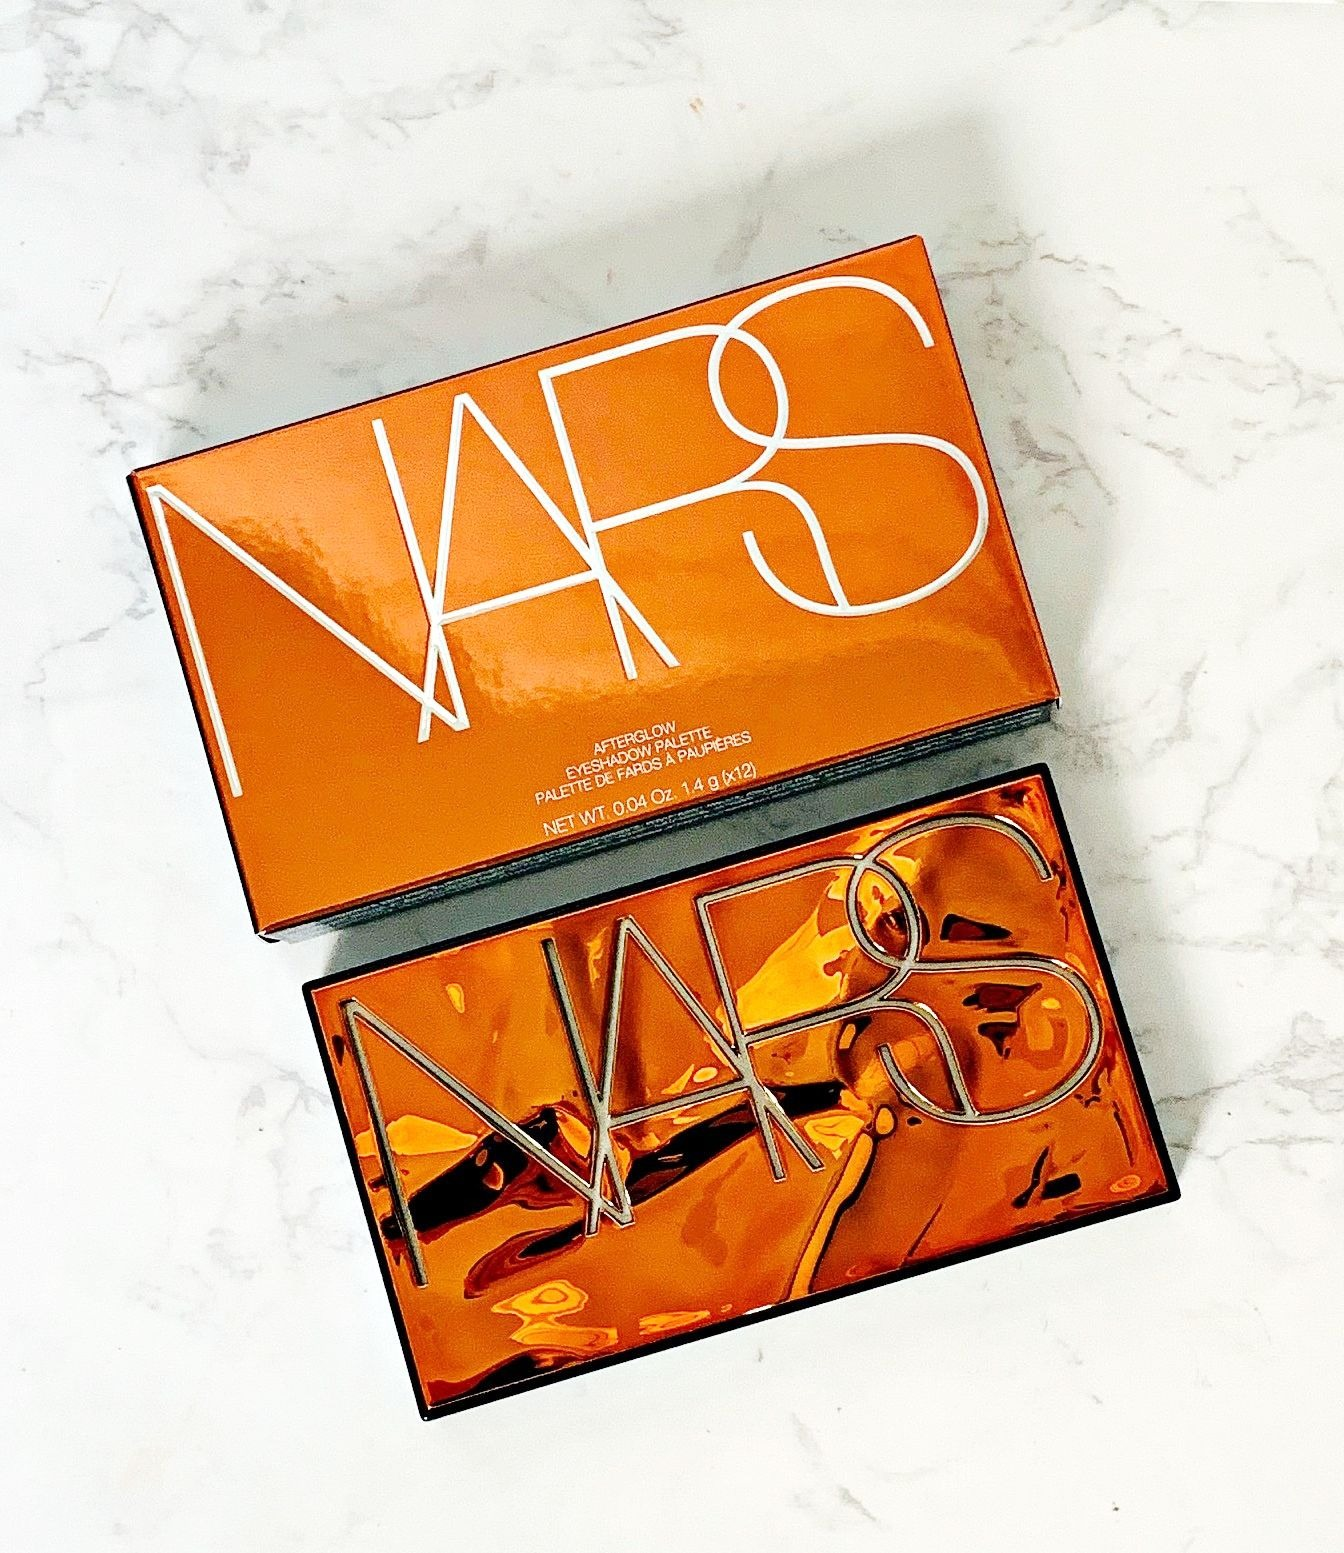 Nars Afterglow Palette review & Swatches